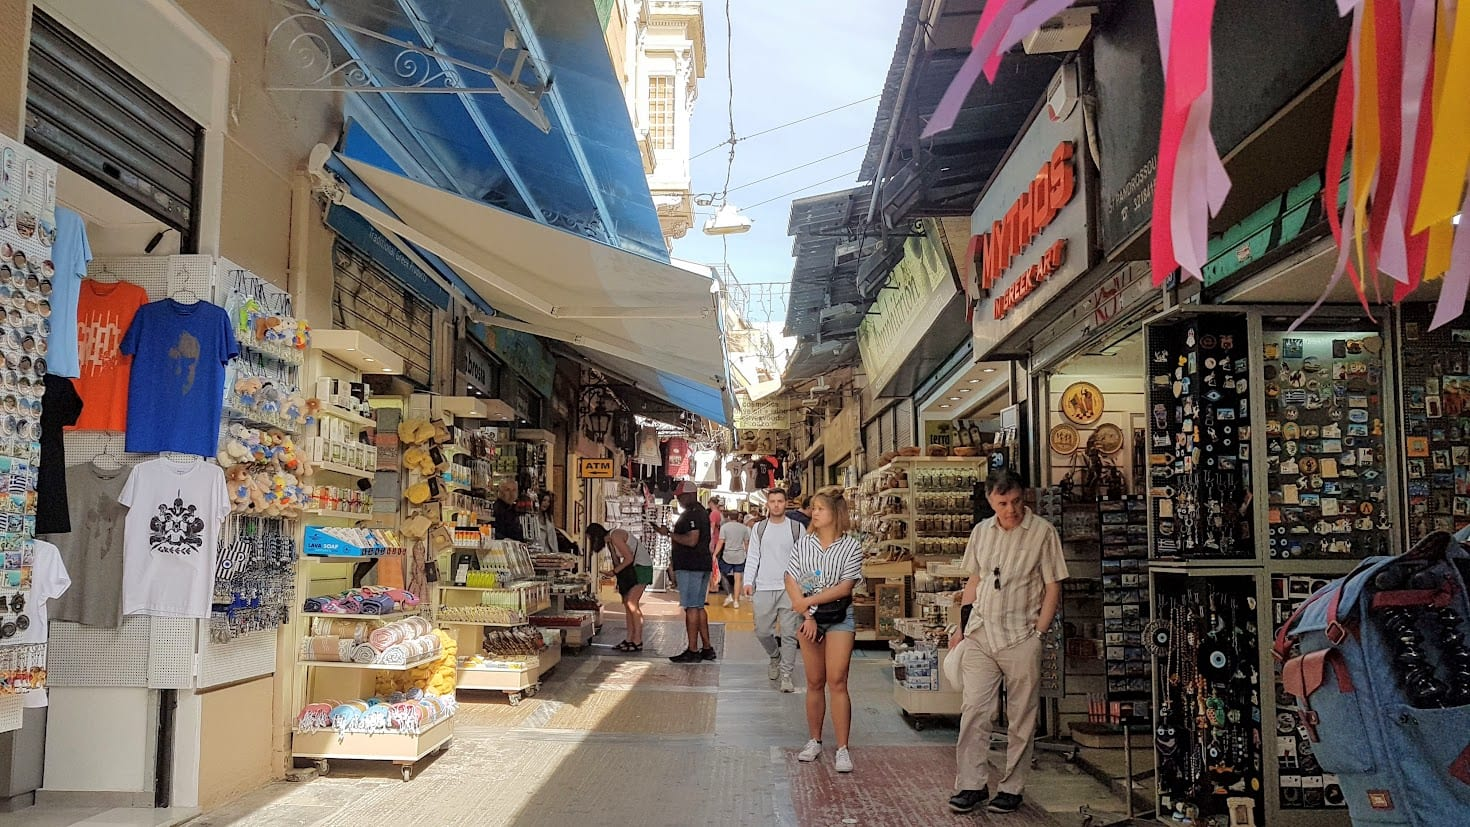 Shopping in the streets of Athens Greece